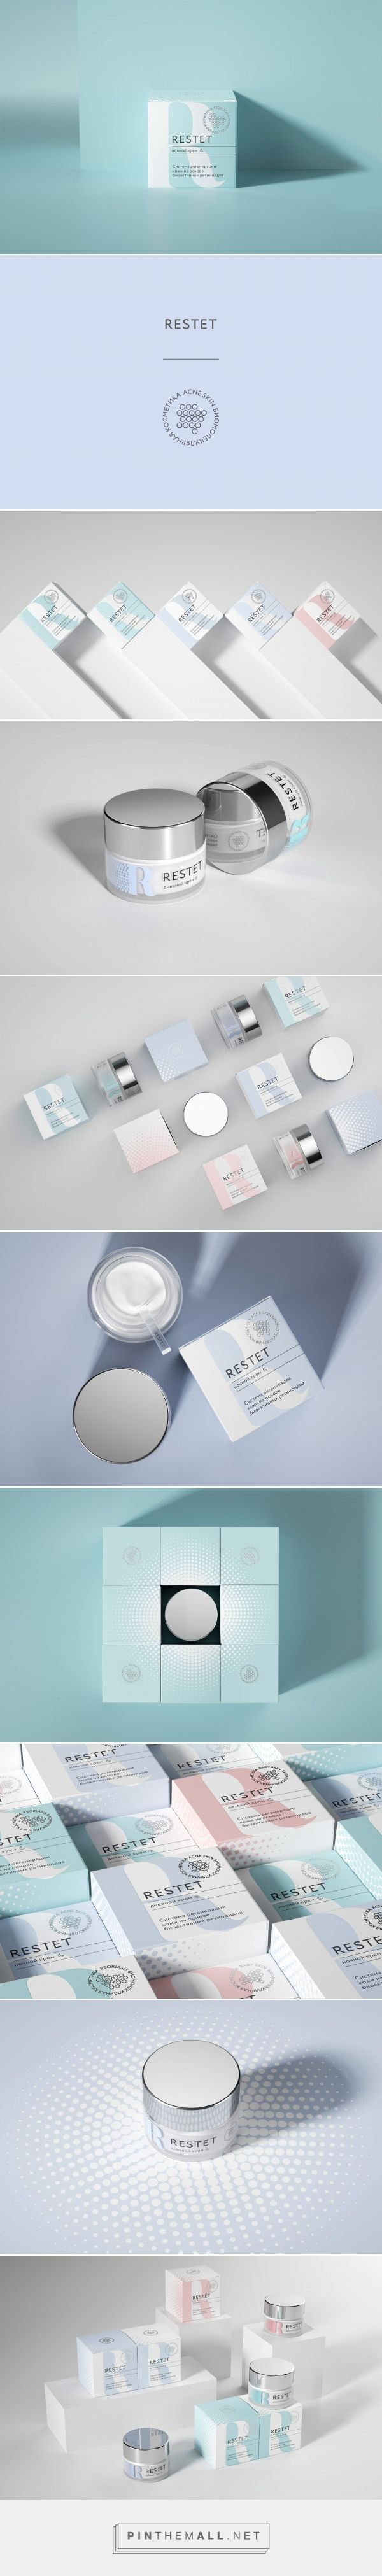 Restet cosmetic packaging design by REPINA branding - https://www.packagingoftheworld.com/2018/06/restet.html